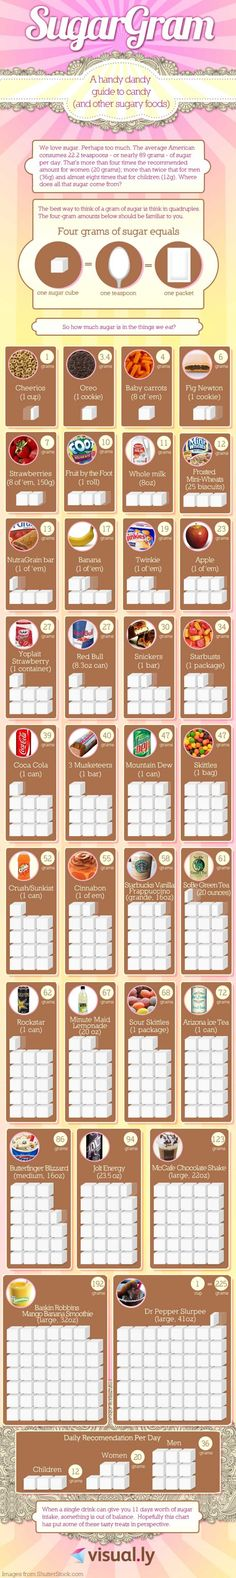 So, how much sugar is in the things we eat? A handy dandy guide to candy and other sugary foods.   http://healthproductsforyou.com